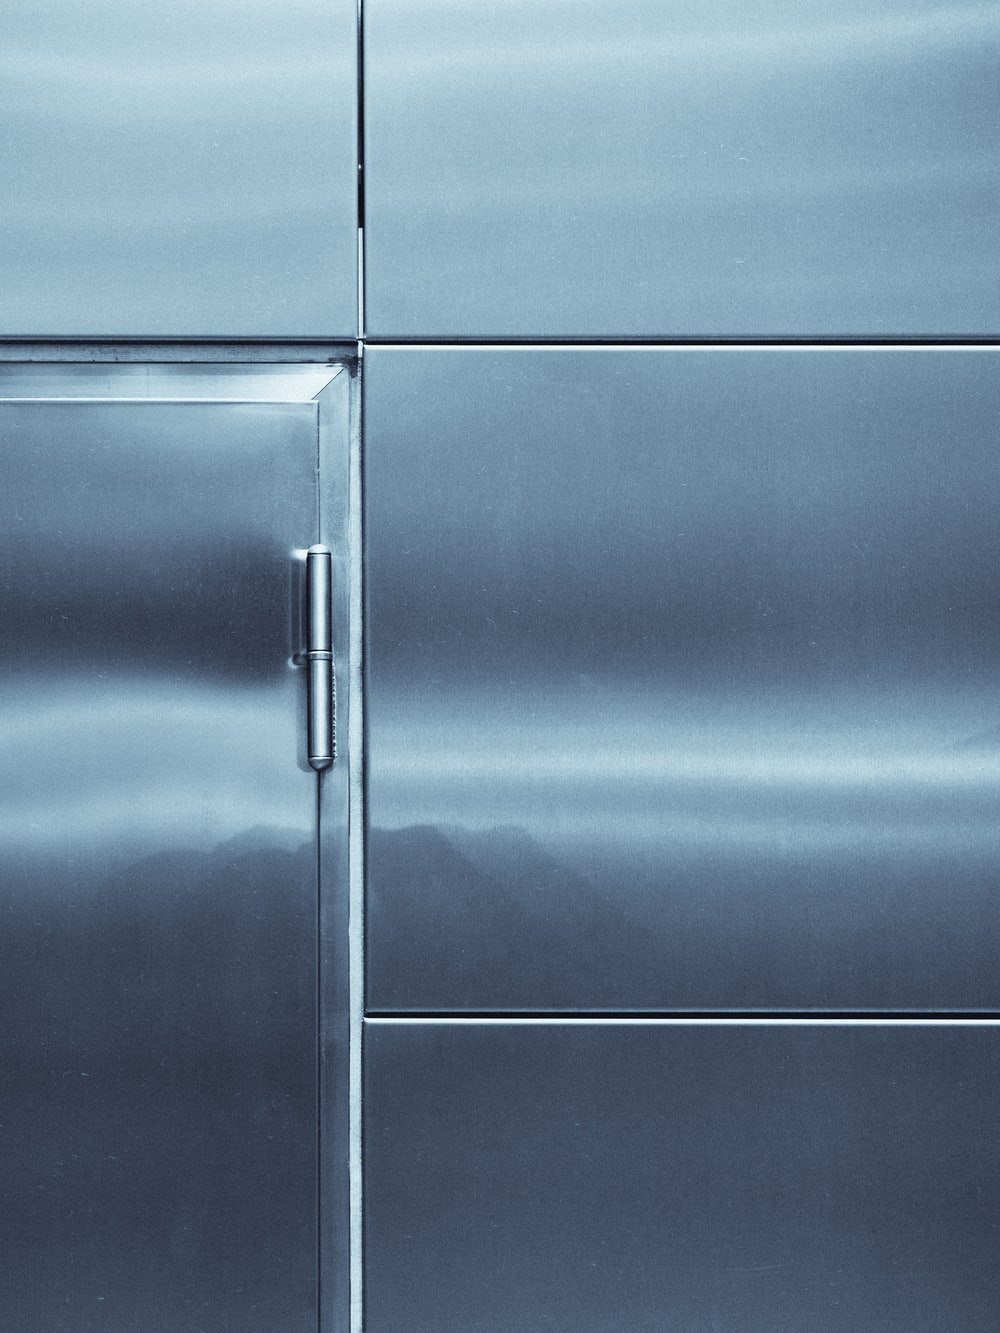 stainless steel top mount refrigerator